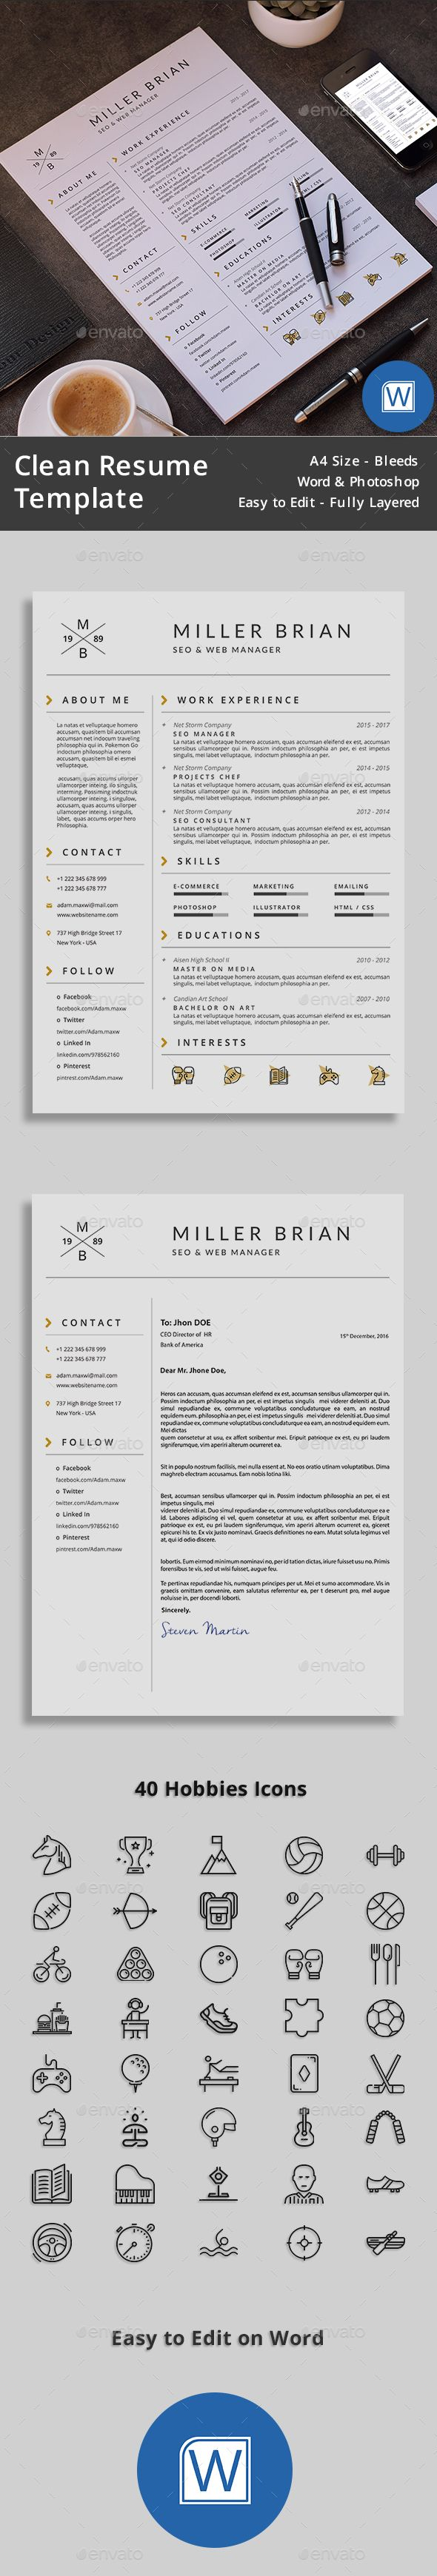 professional modern resume template for ms word